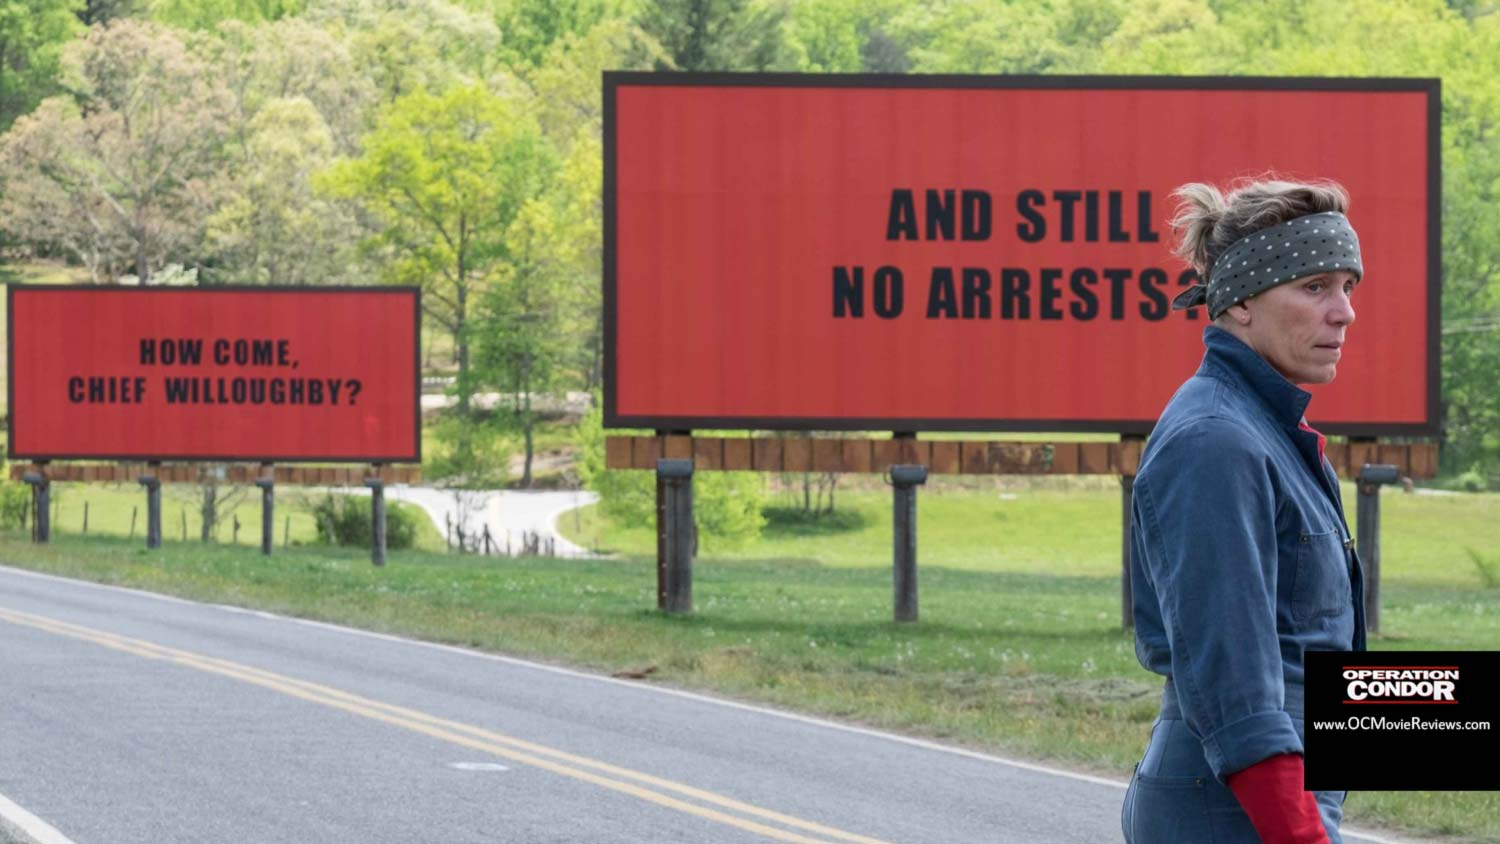 Three Billboards Outside Ebbing Missouri Review - OC Movie Reviews - Movie Reviews, Movie News, Documentary Reviews, Short Films, Short Film Reviews, Trailers, Movie Trailers, Interviews, film reviews, film news, hollywood, indie films, documentaries